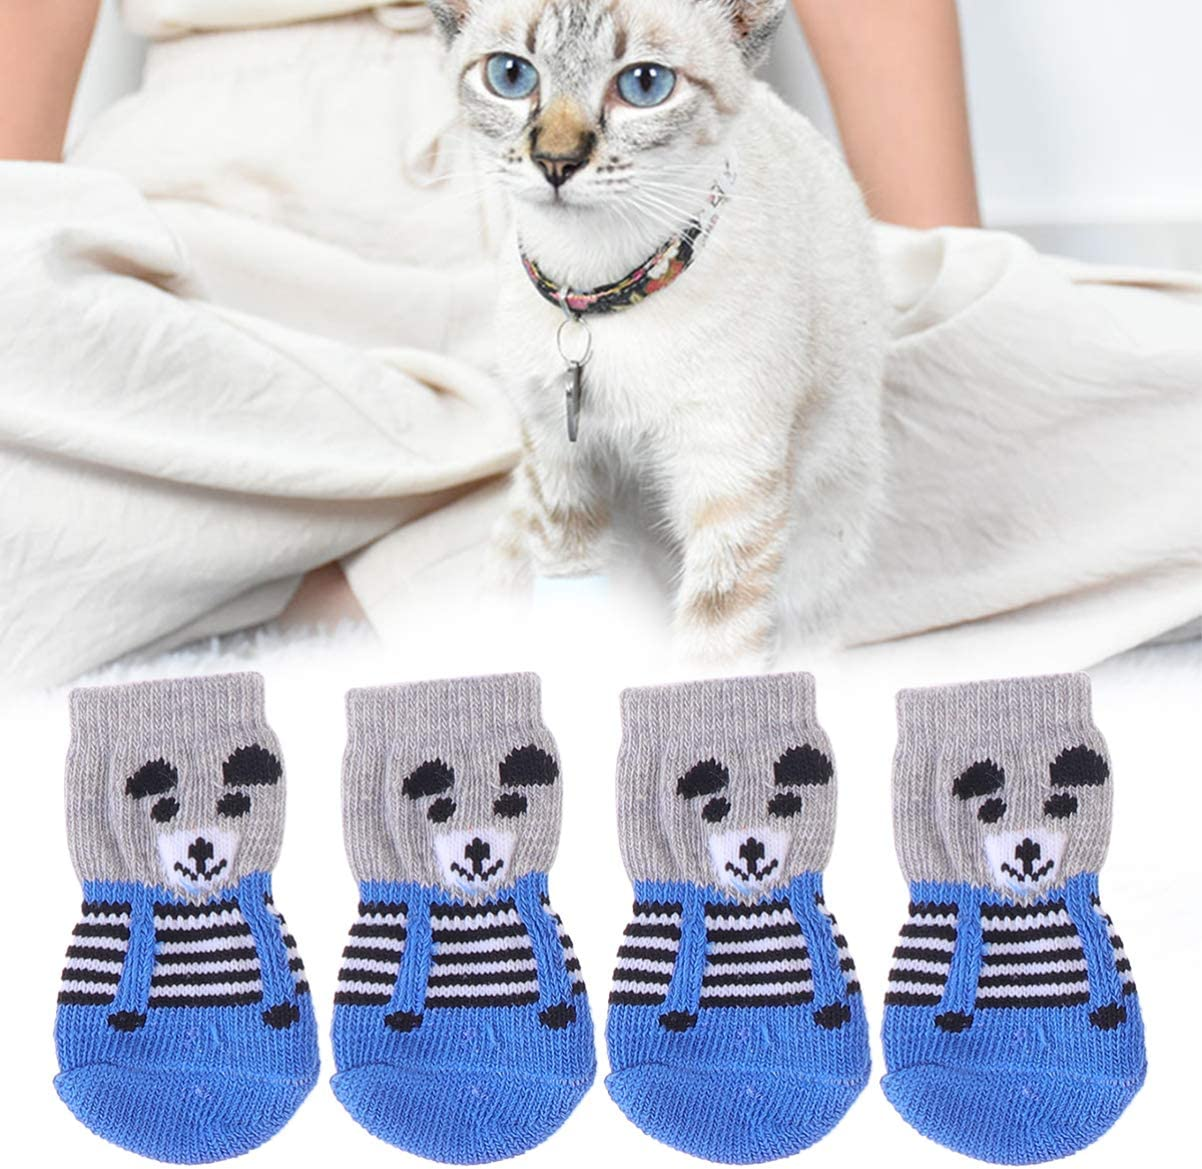 Paw Protection Pet Socks with Rubber Grips,Small Dog Booties Rain Boot for Puppy Cats POPETPOP 4 Pcs Anti-Slip Dog Socks Traction Control for Indoor Wear Random Color Size S